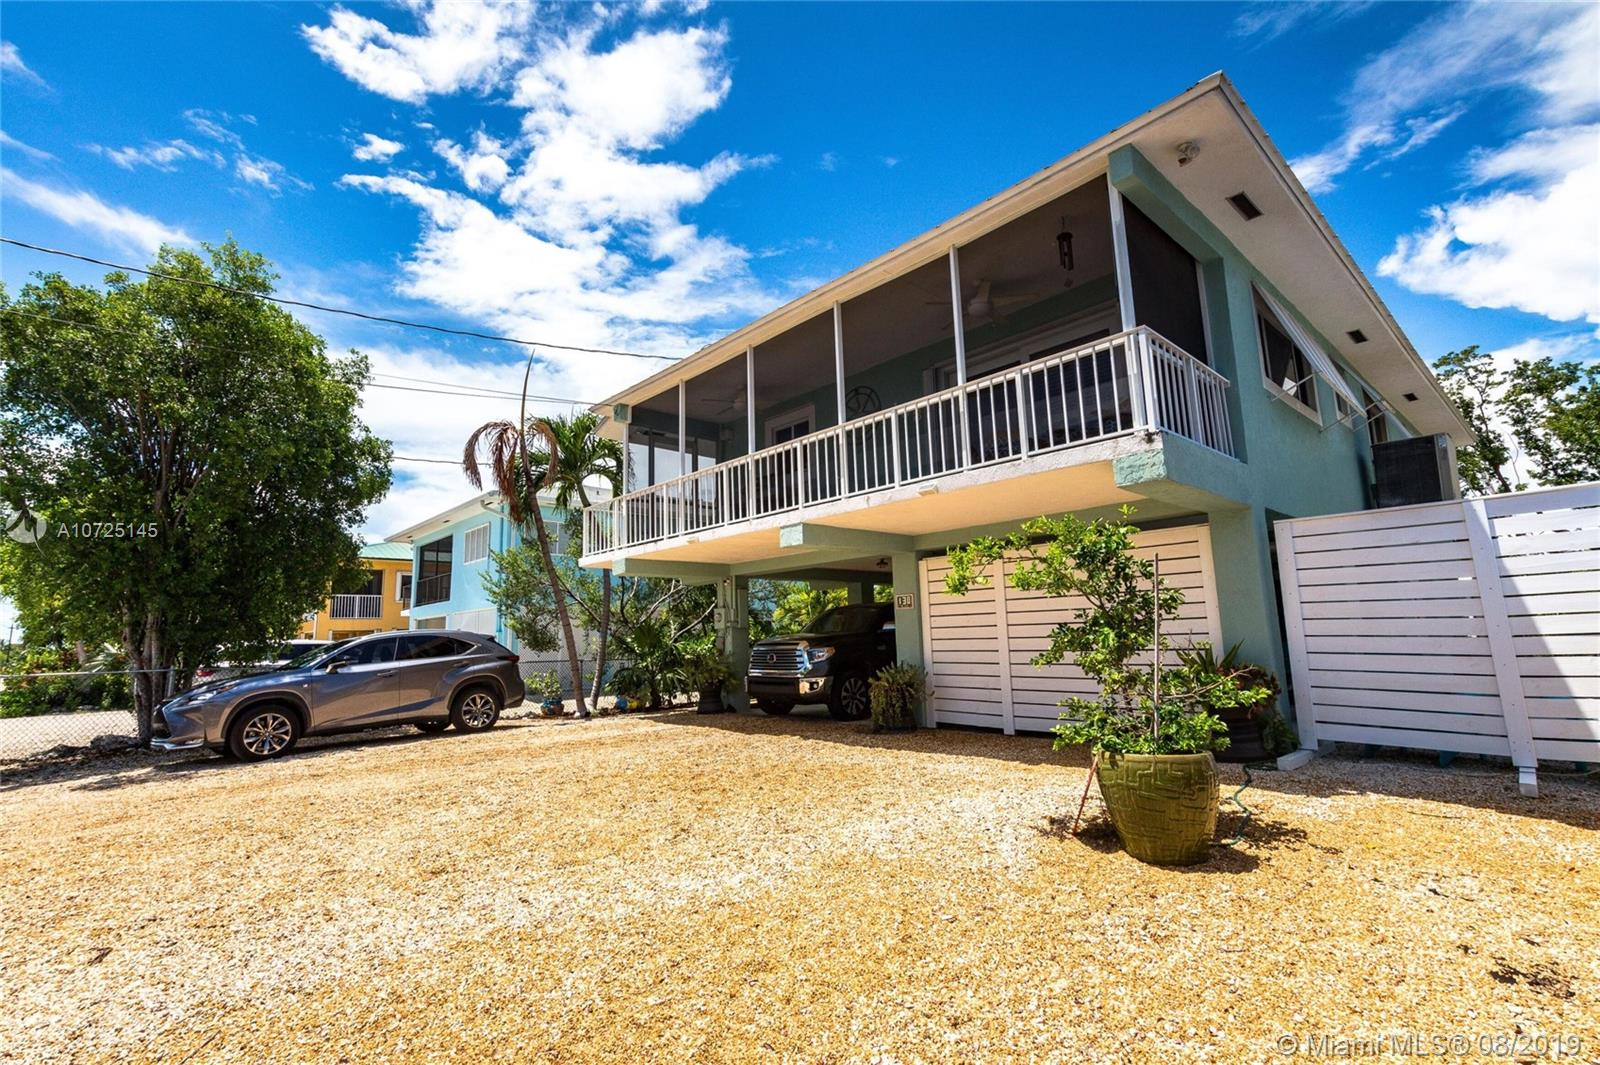 138 Ocean Shores Dr, Key Largo in Monroe County County, FL 33037 Home for Sale